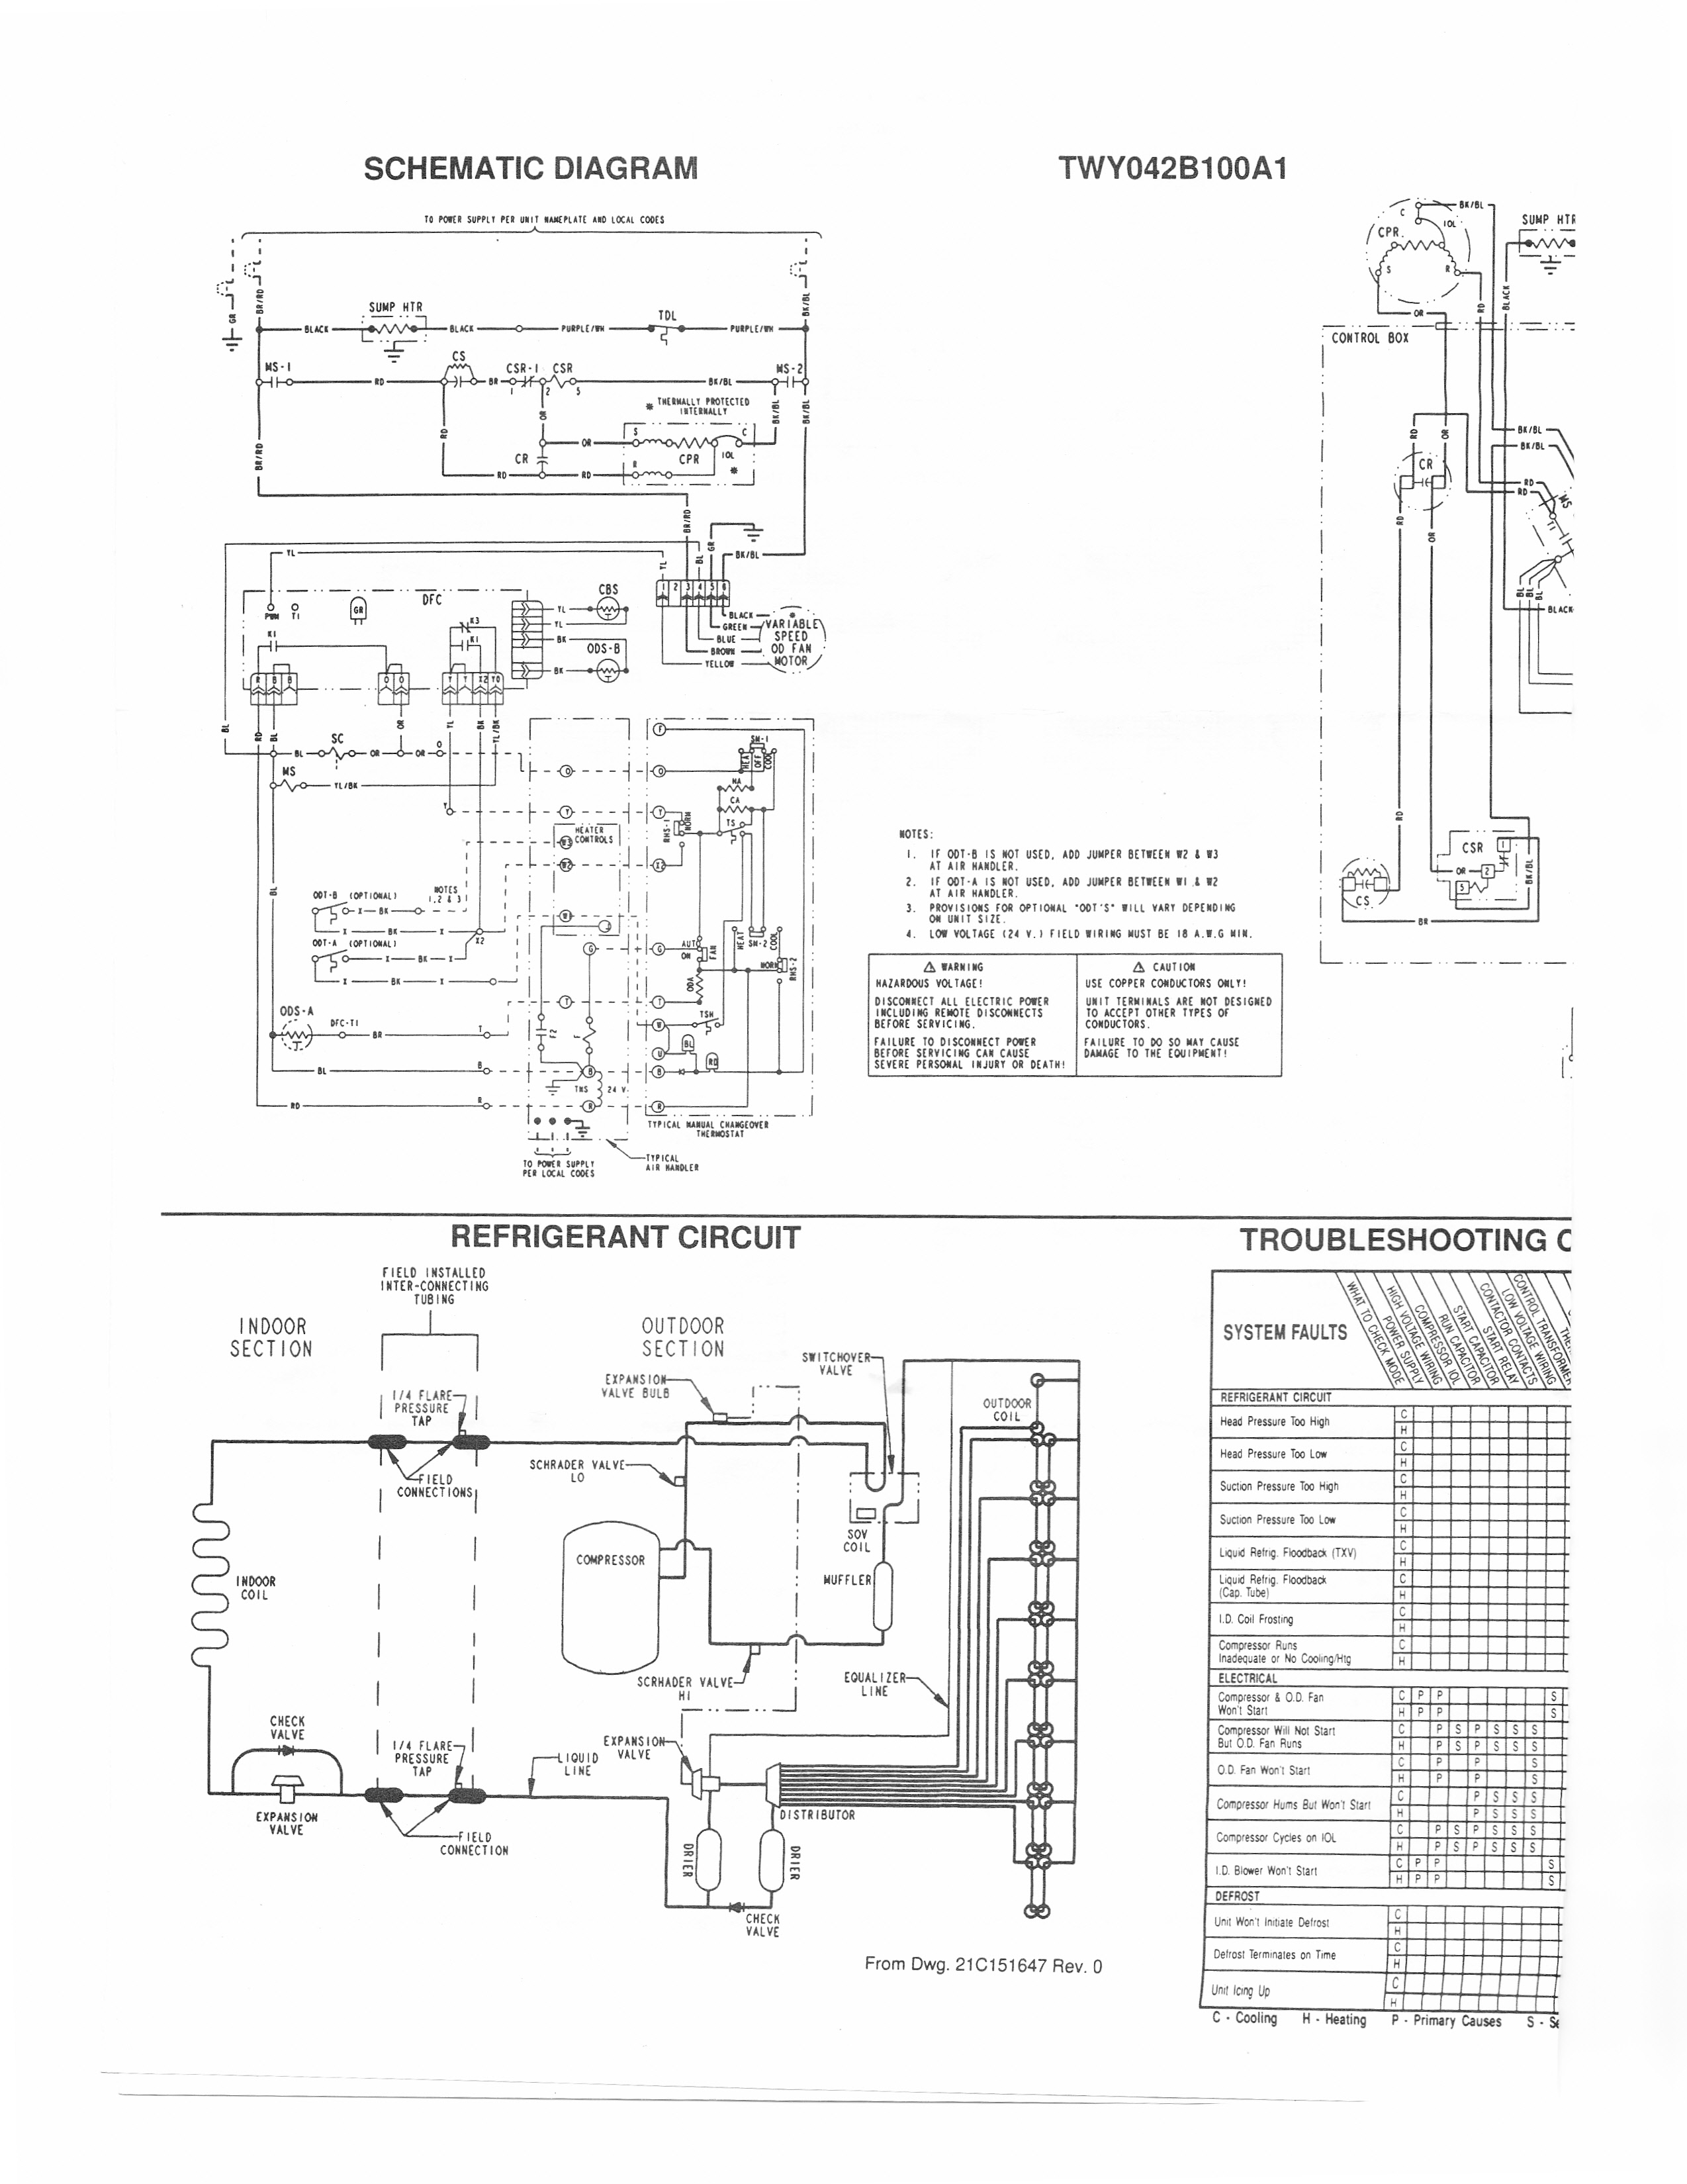 trane heat pump thermostat wiring diagram Collection-Trane Air Conditioner Wiring Schematic Handler Diagram For Solidfonts New Heat Pump And Thermostat For Trane Wiring Diagram 3-n